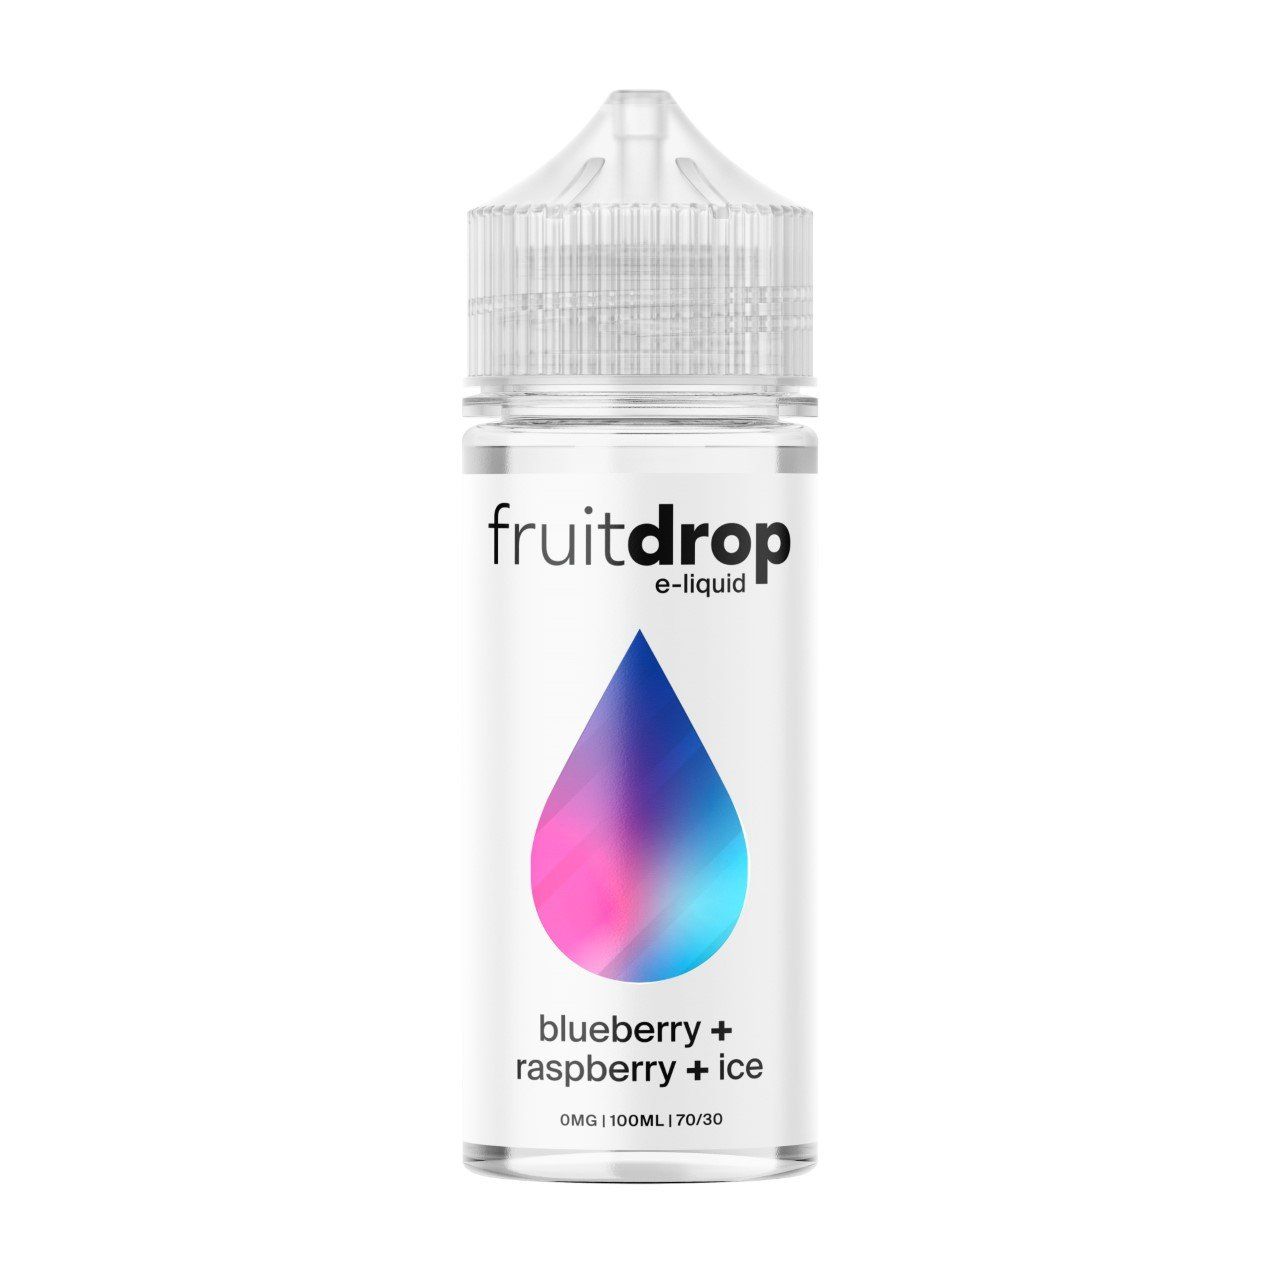 Fruit_Drop_100ml_Bottle_Mockup_Blueberry_Raspberry_Ice